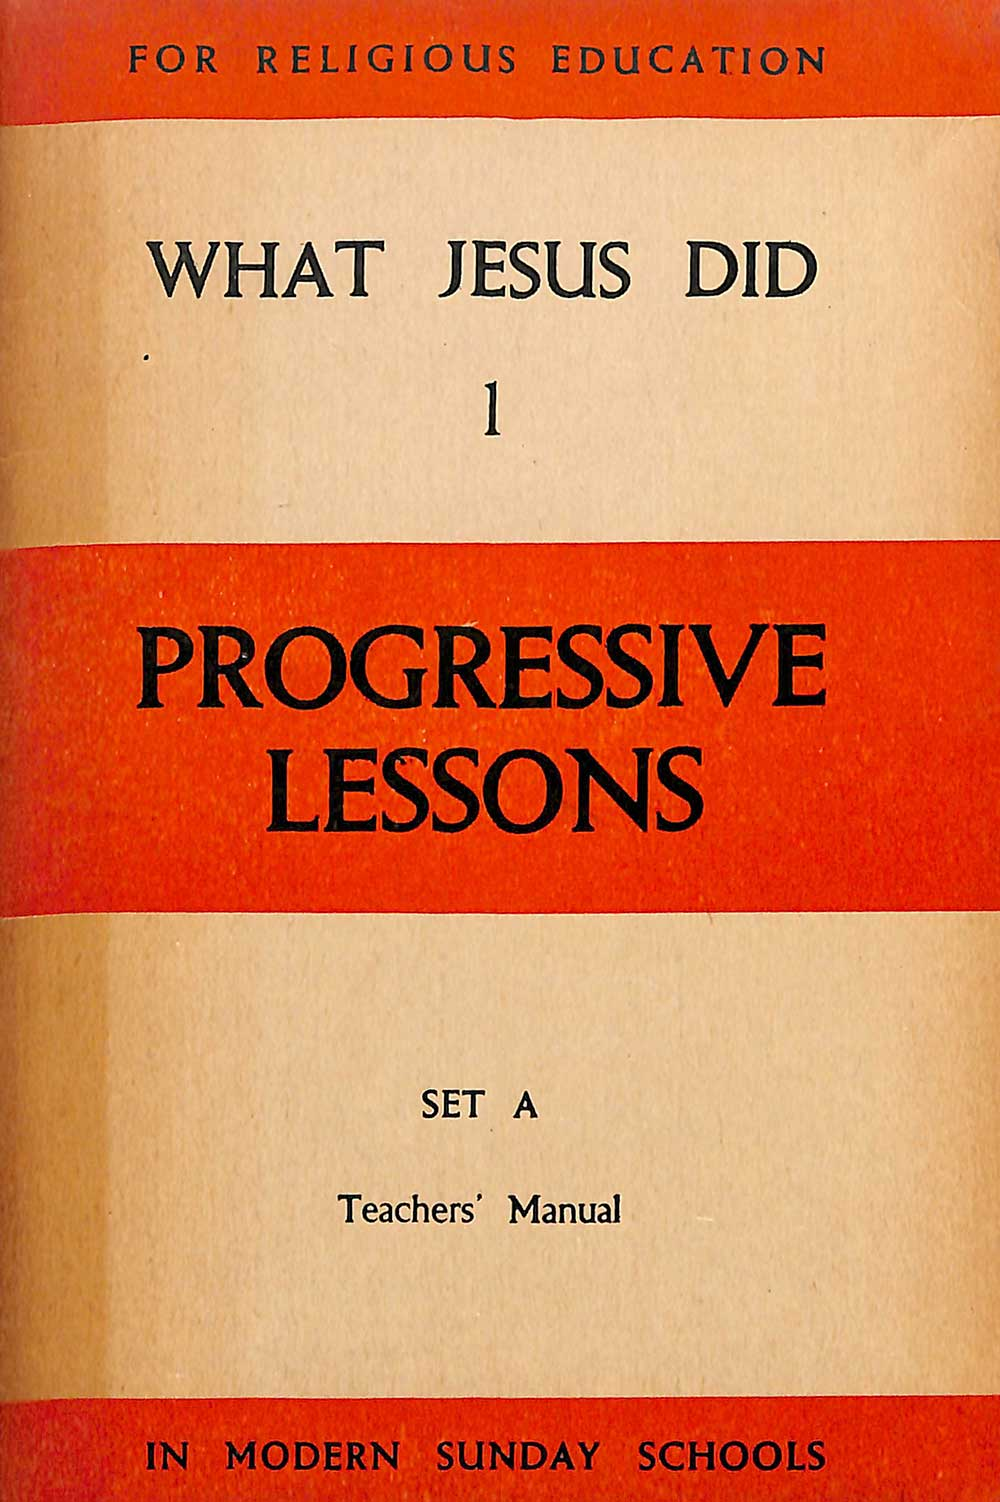 A.W. Reed (editor). <em>Progressive Sunday school lessons: What Jesus did, 1.</em> Wellington: A.H. & A.W. Reed, 1948.